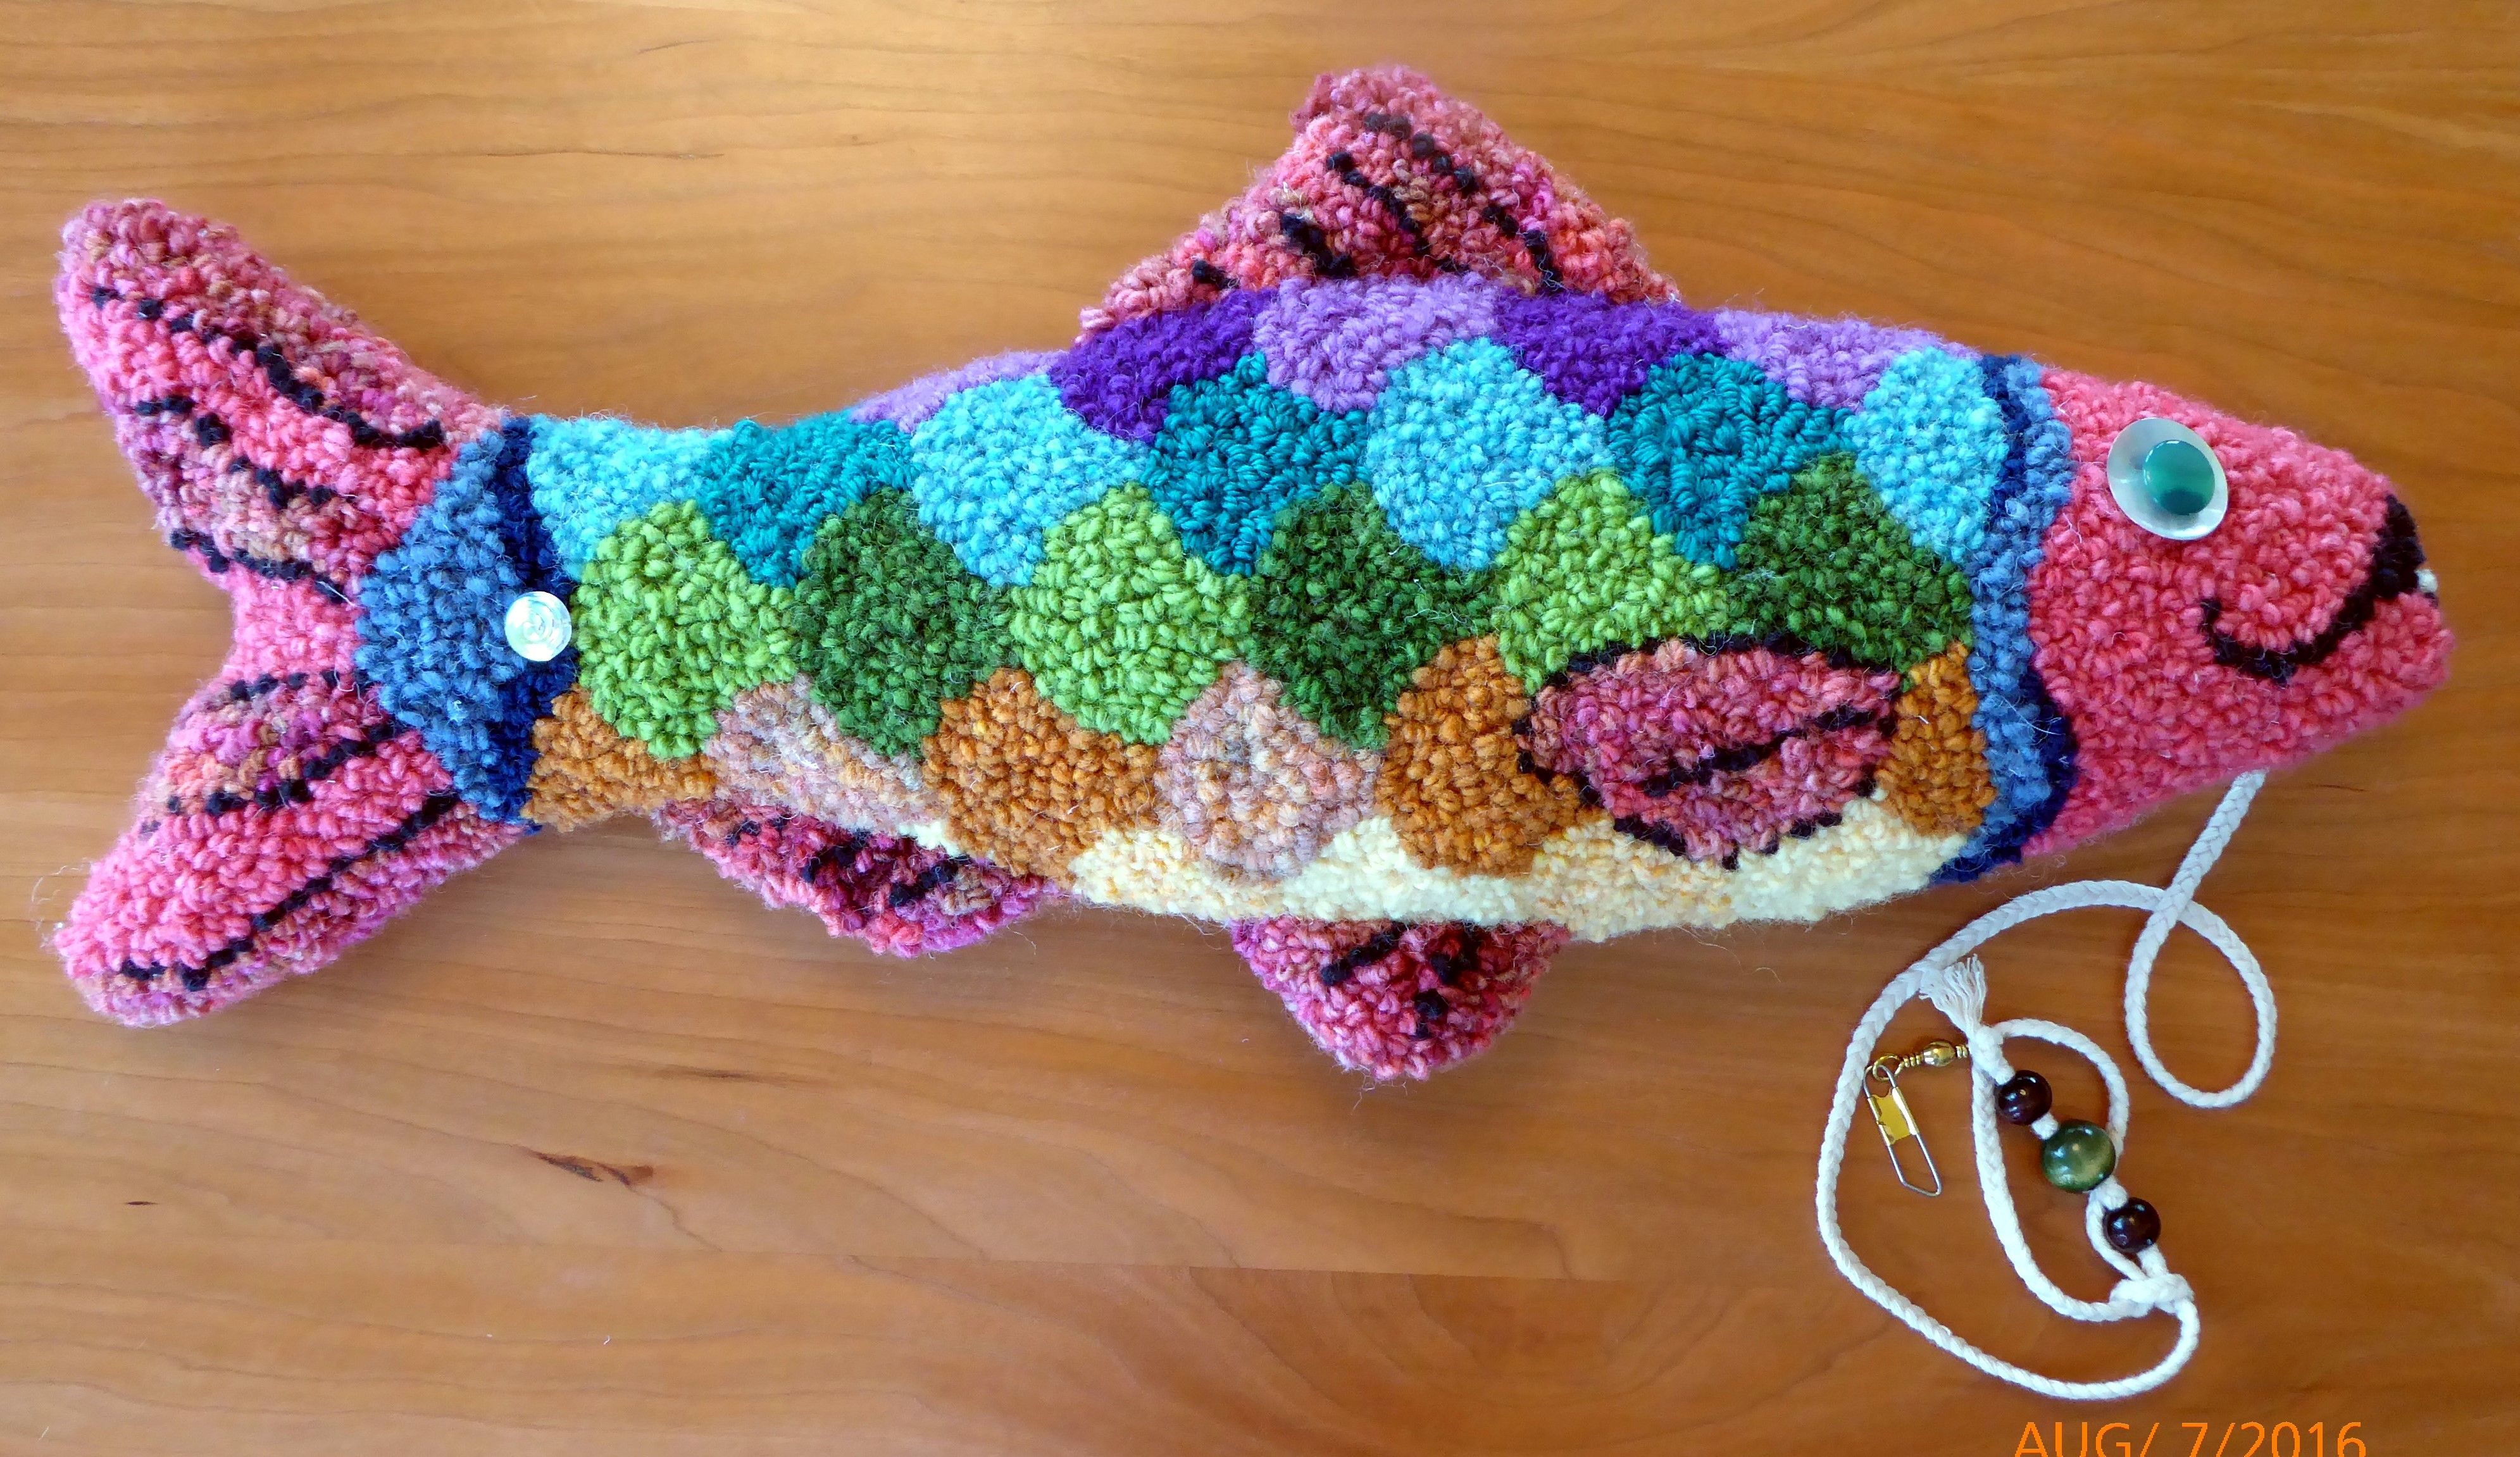 Hand Hooked Ali Alewife Fish Sculpture By Susan Ferraro Rug Hooking Patterns Rug Hooking Designs Punch Needle Embroidery